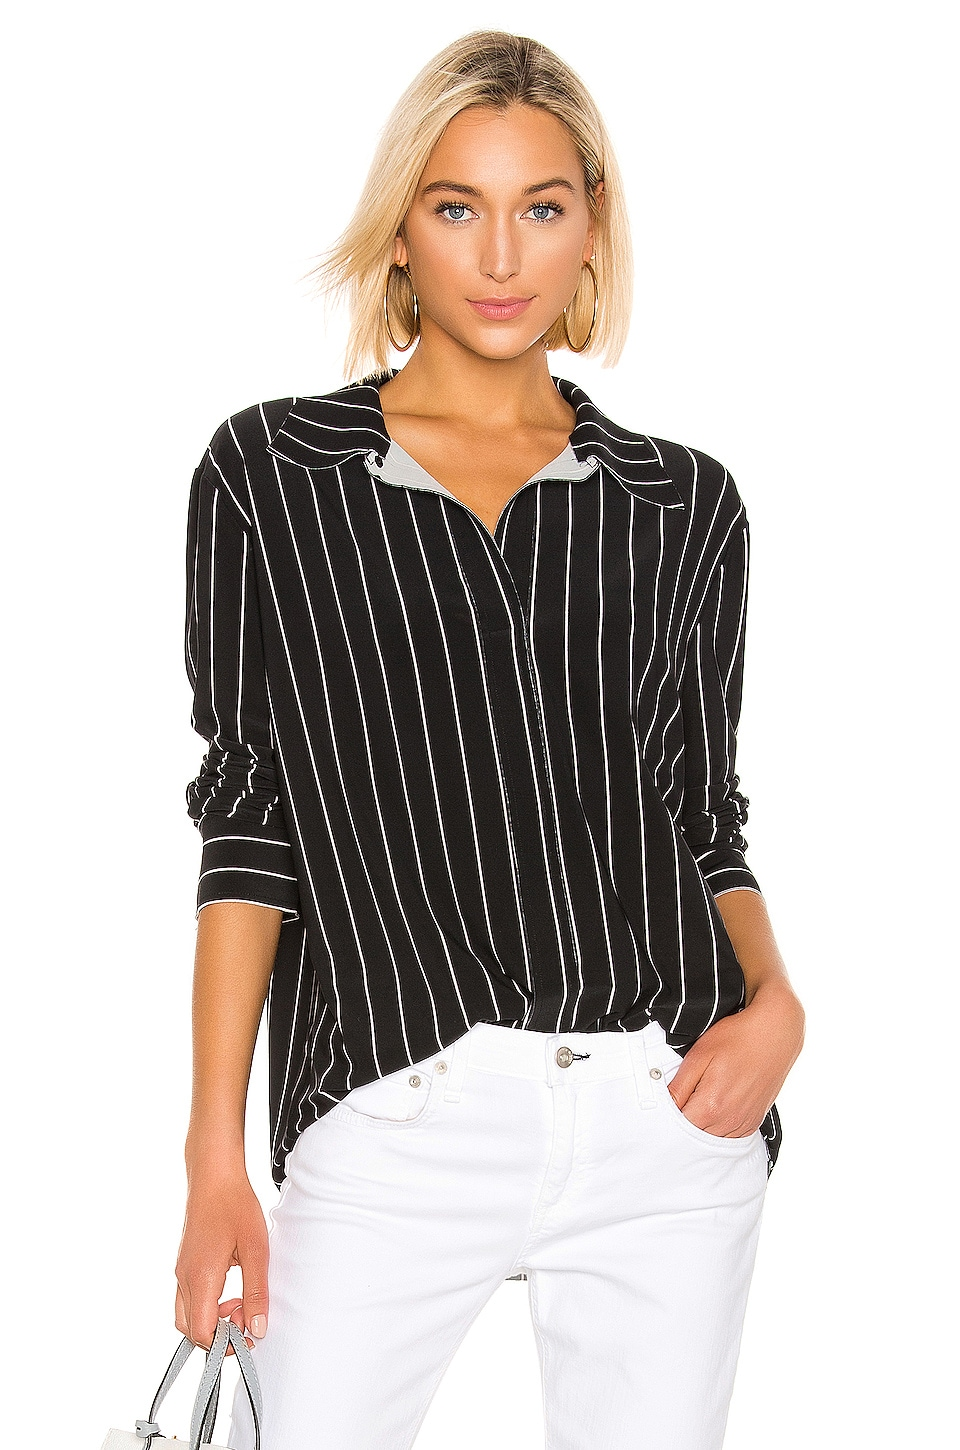 Norma Kamali Boyfriend NK Shirt in Black Stripe